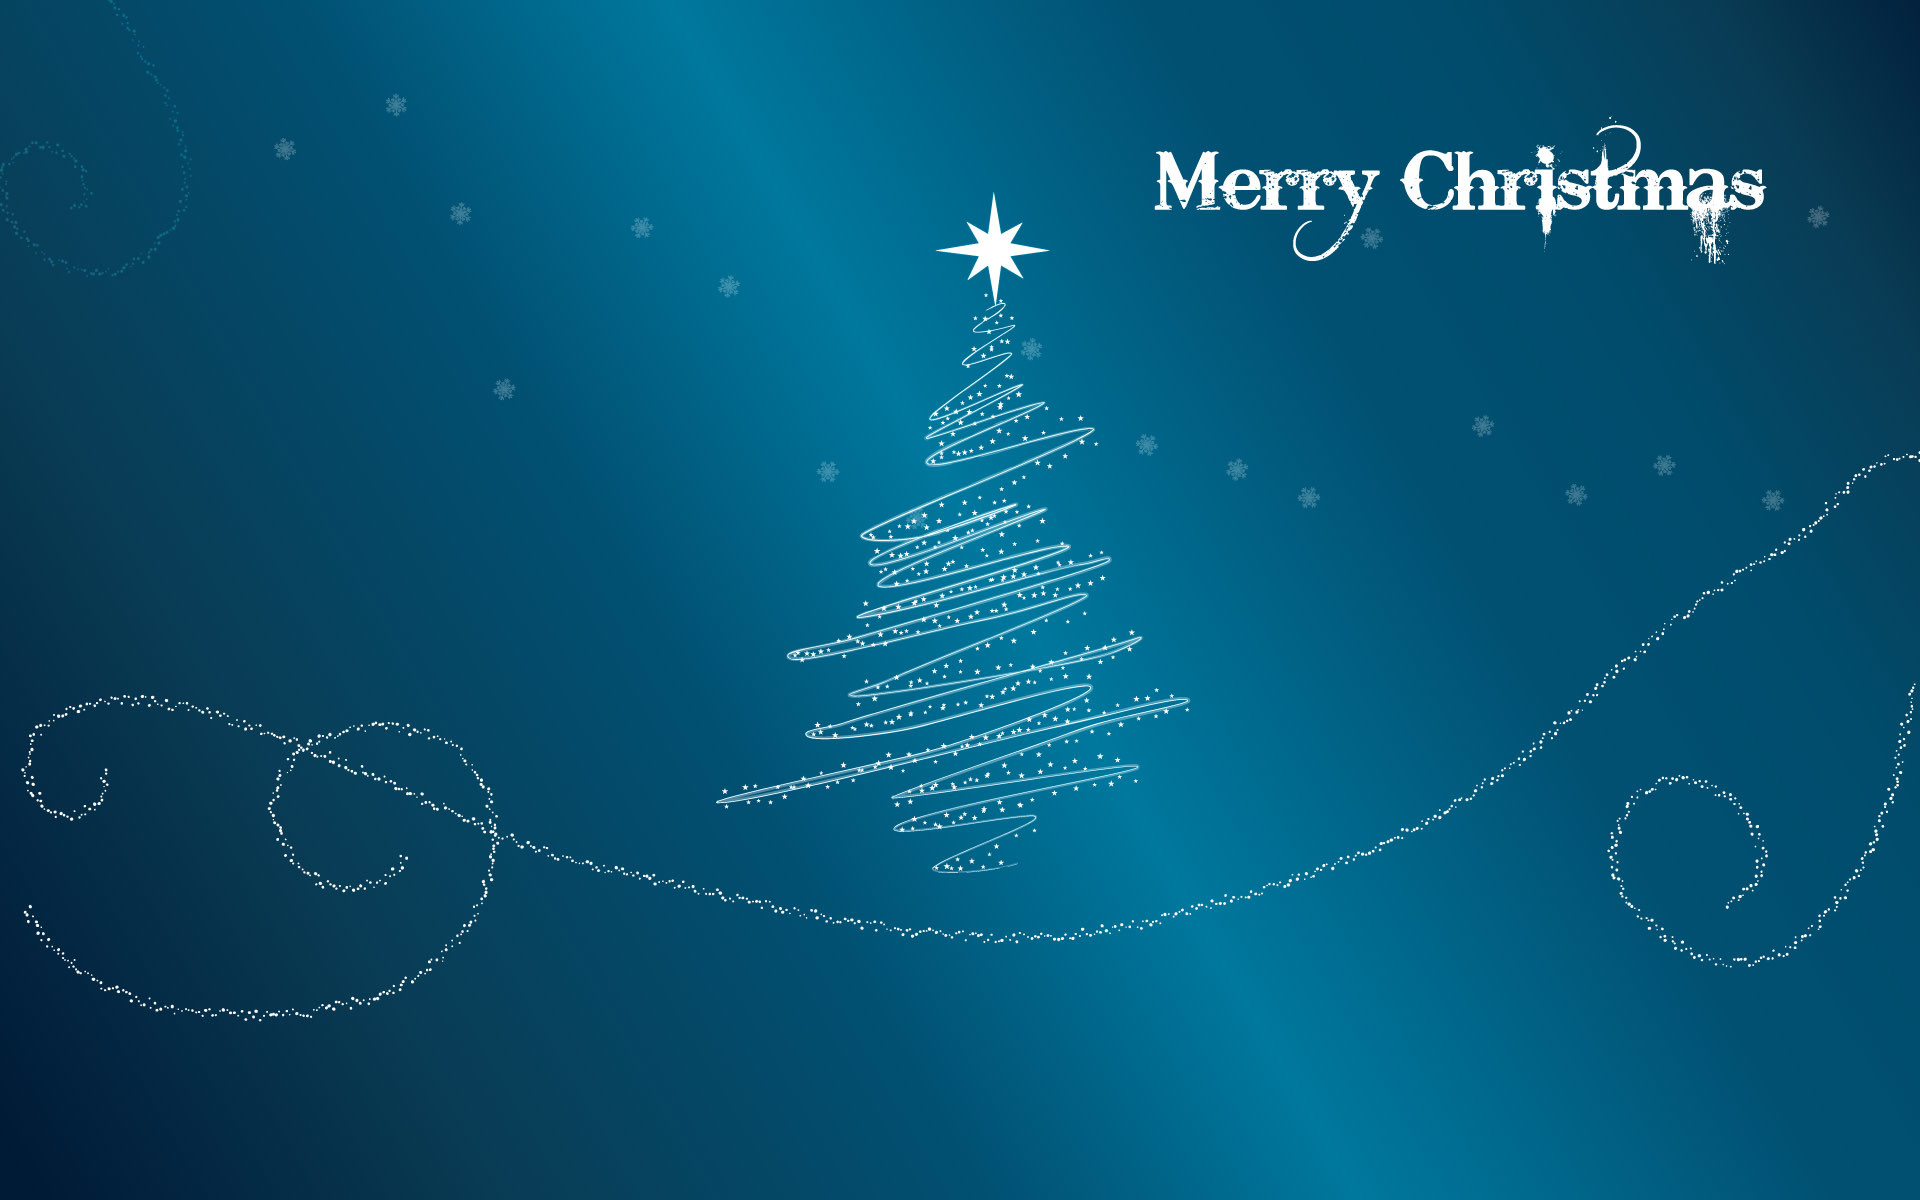 Merry Christmas Glitter Wallpapers   HD Wallpapers